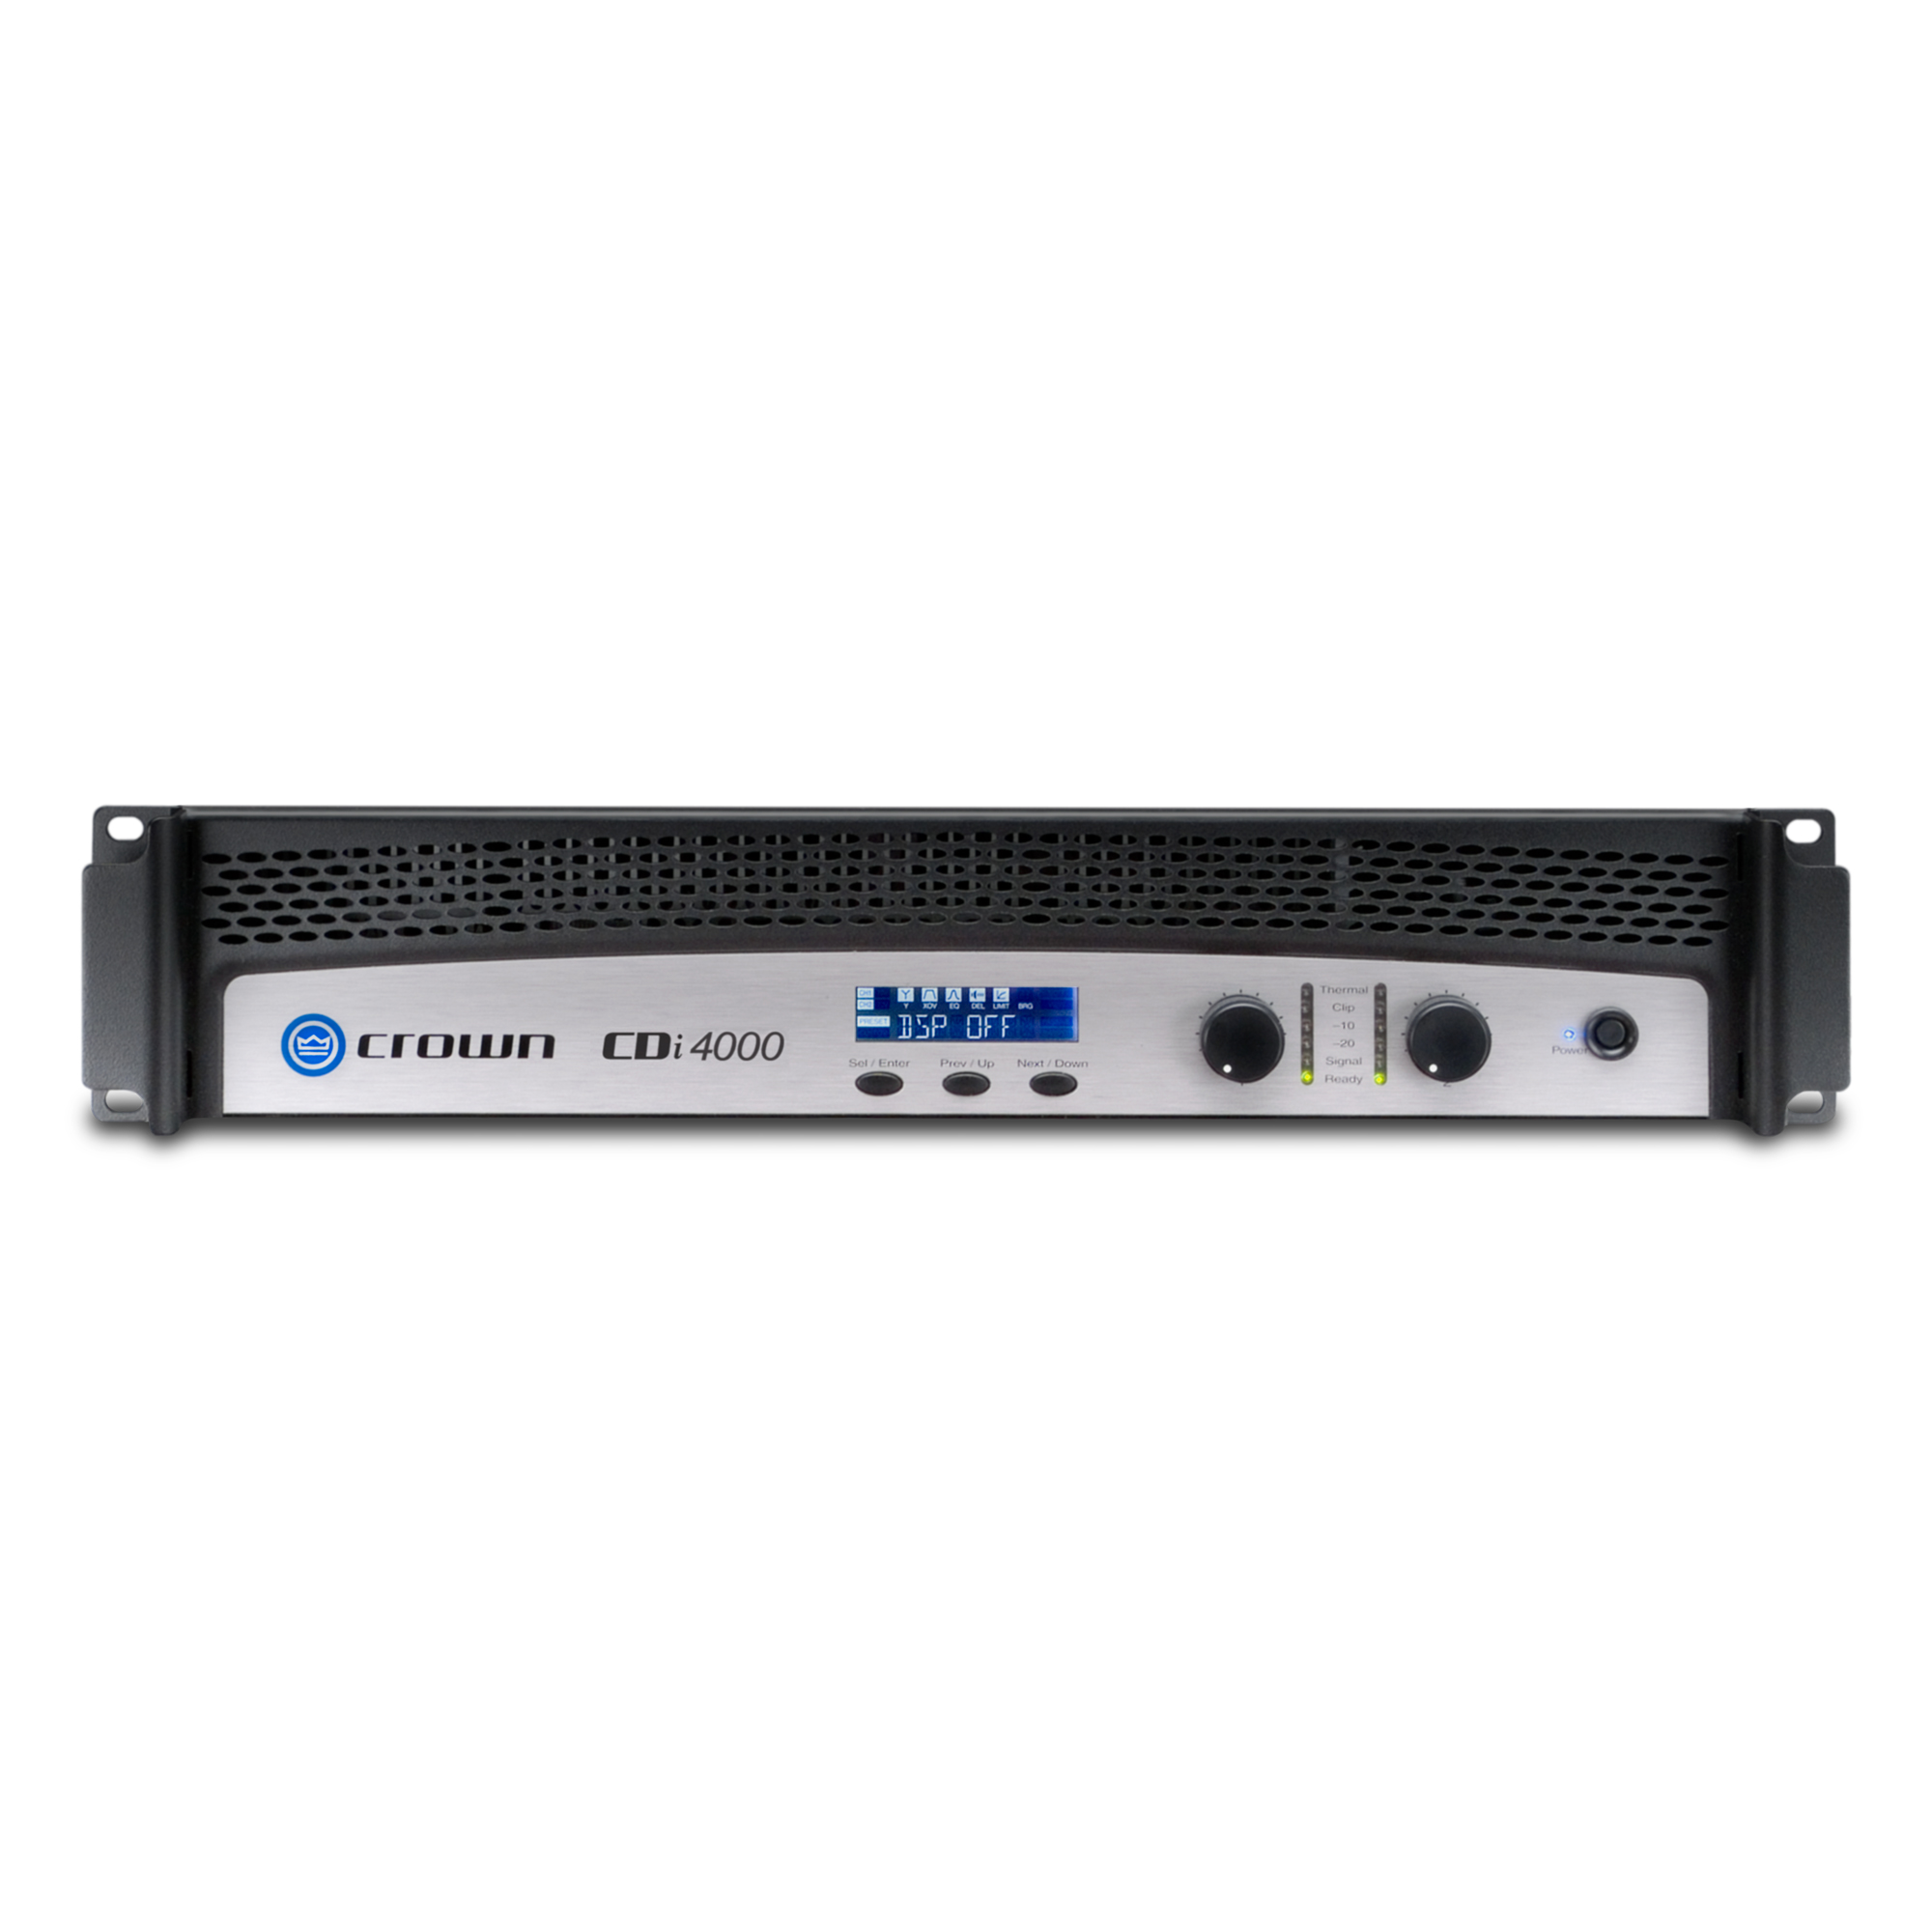 Two-channel, 1200W @ 4Ω, 70V/140V Power Amplifier